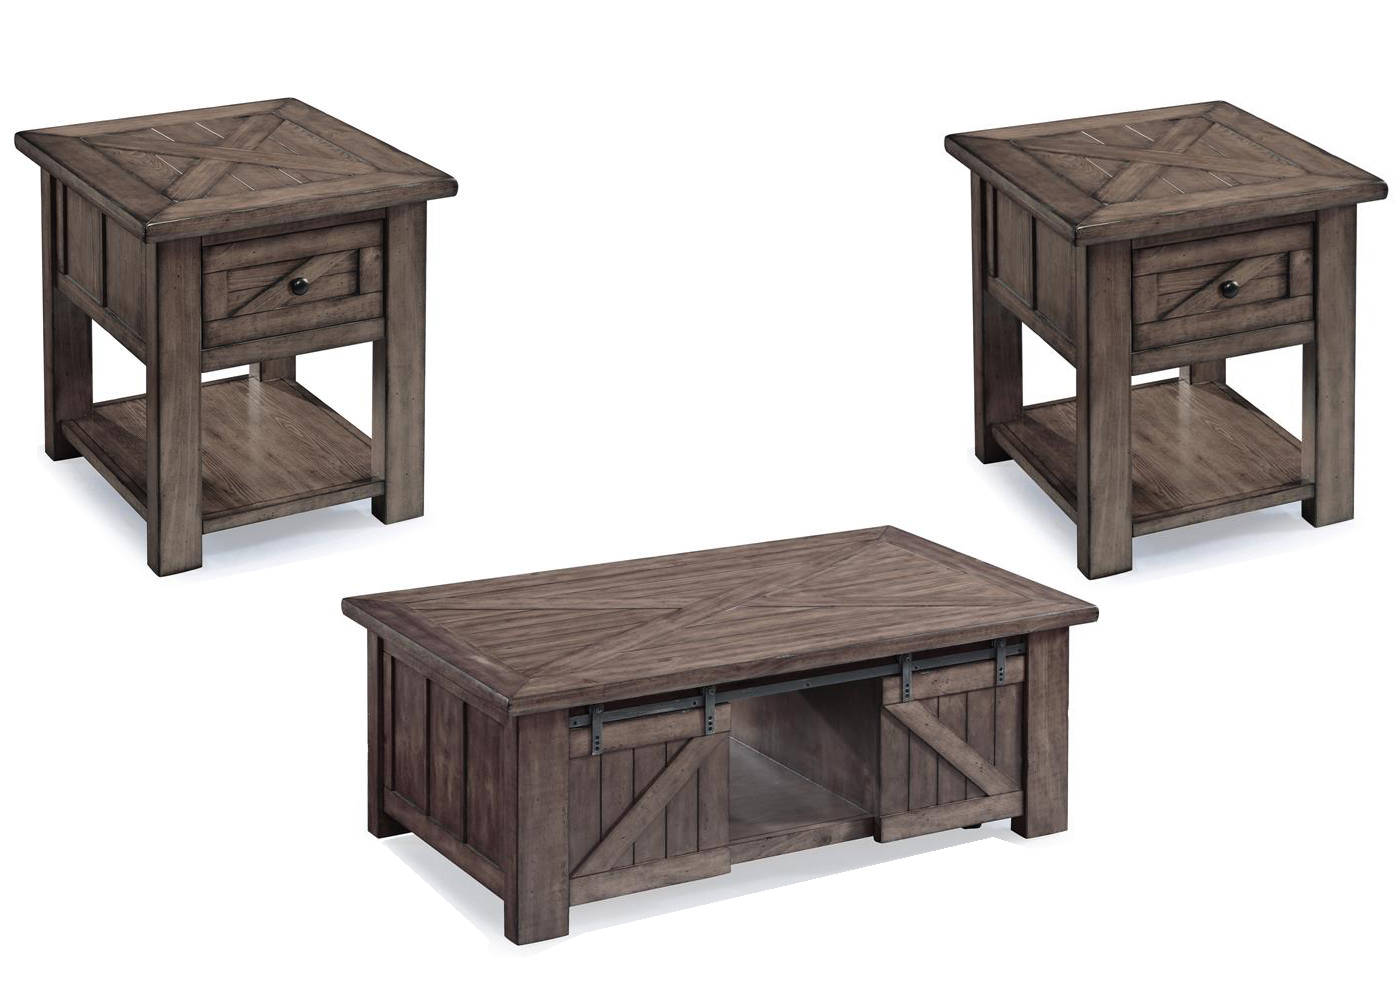 magnussen home garrett wood coffee table set the classy rectangular end tables sets click enlarge inch legs liberty furniture bedroom suites small round plastic outdoor mainstays